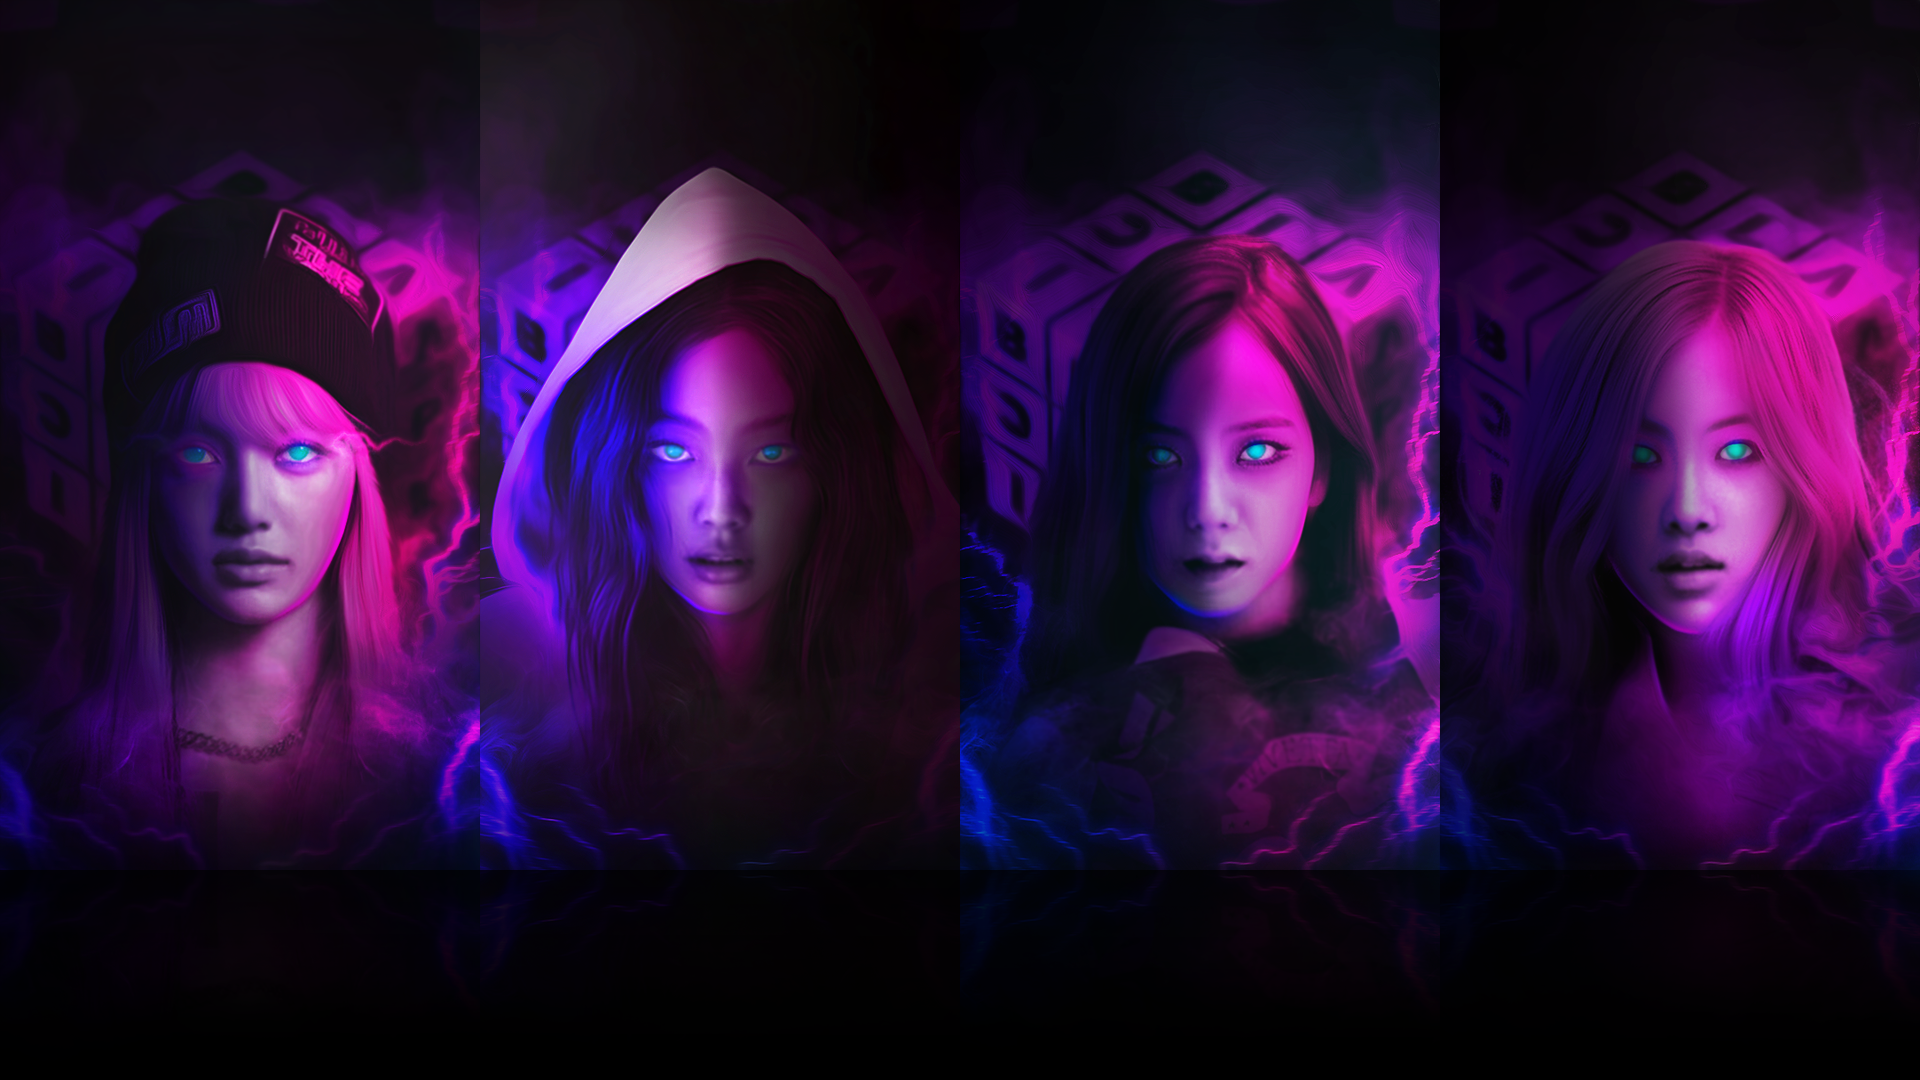 Blackpink Wallpaper 1920x1080 Posted By Ethan Cunningham